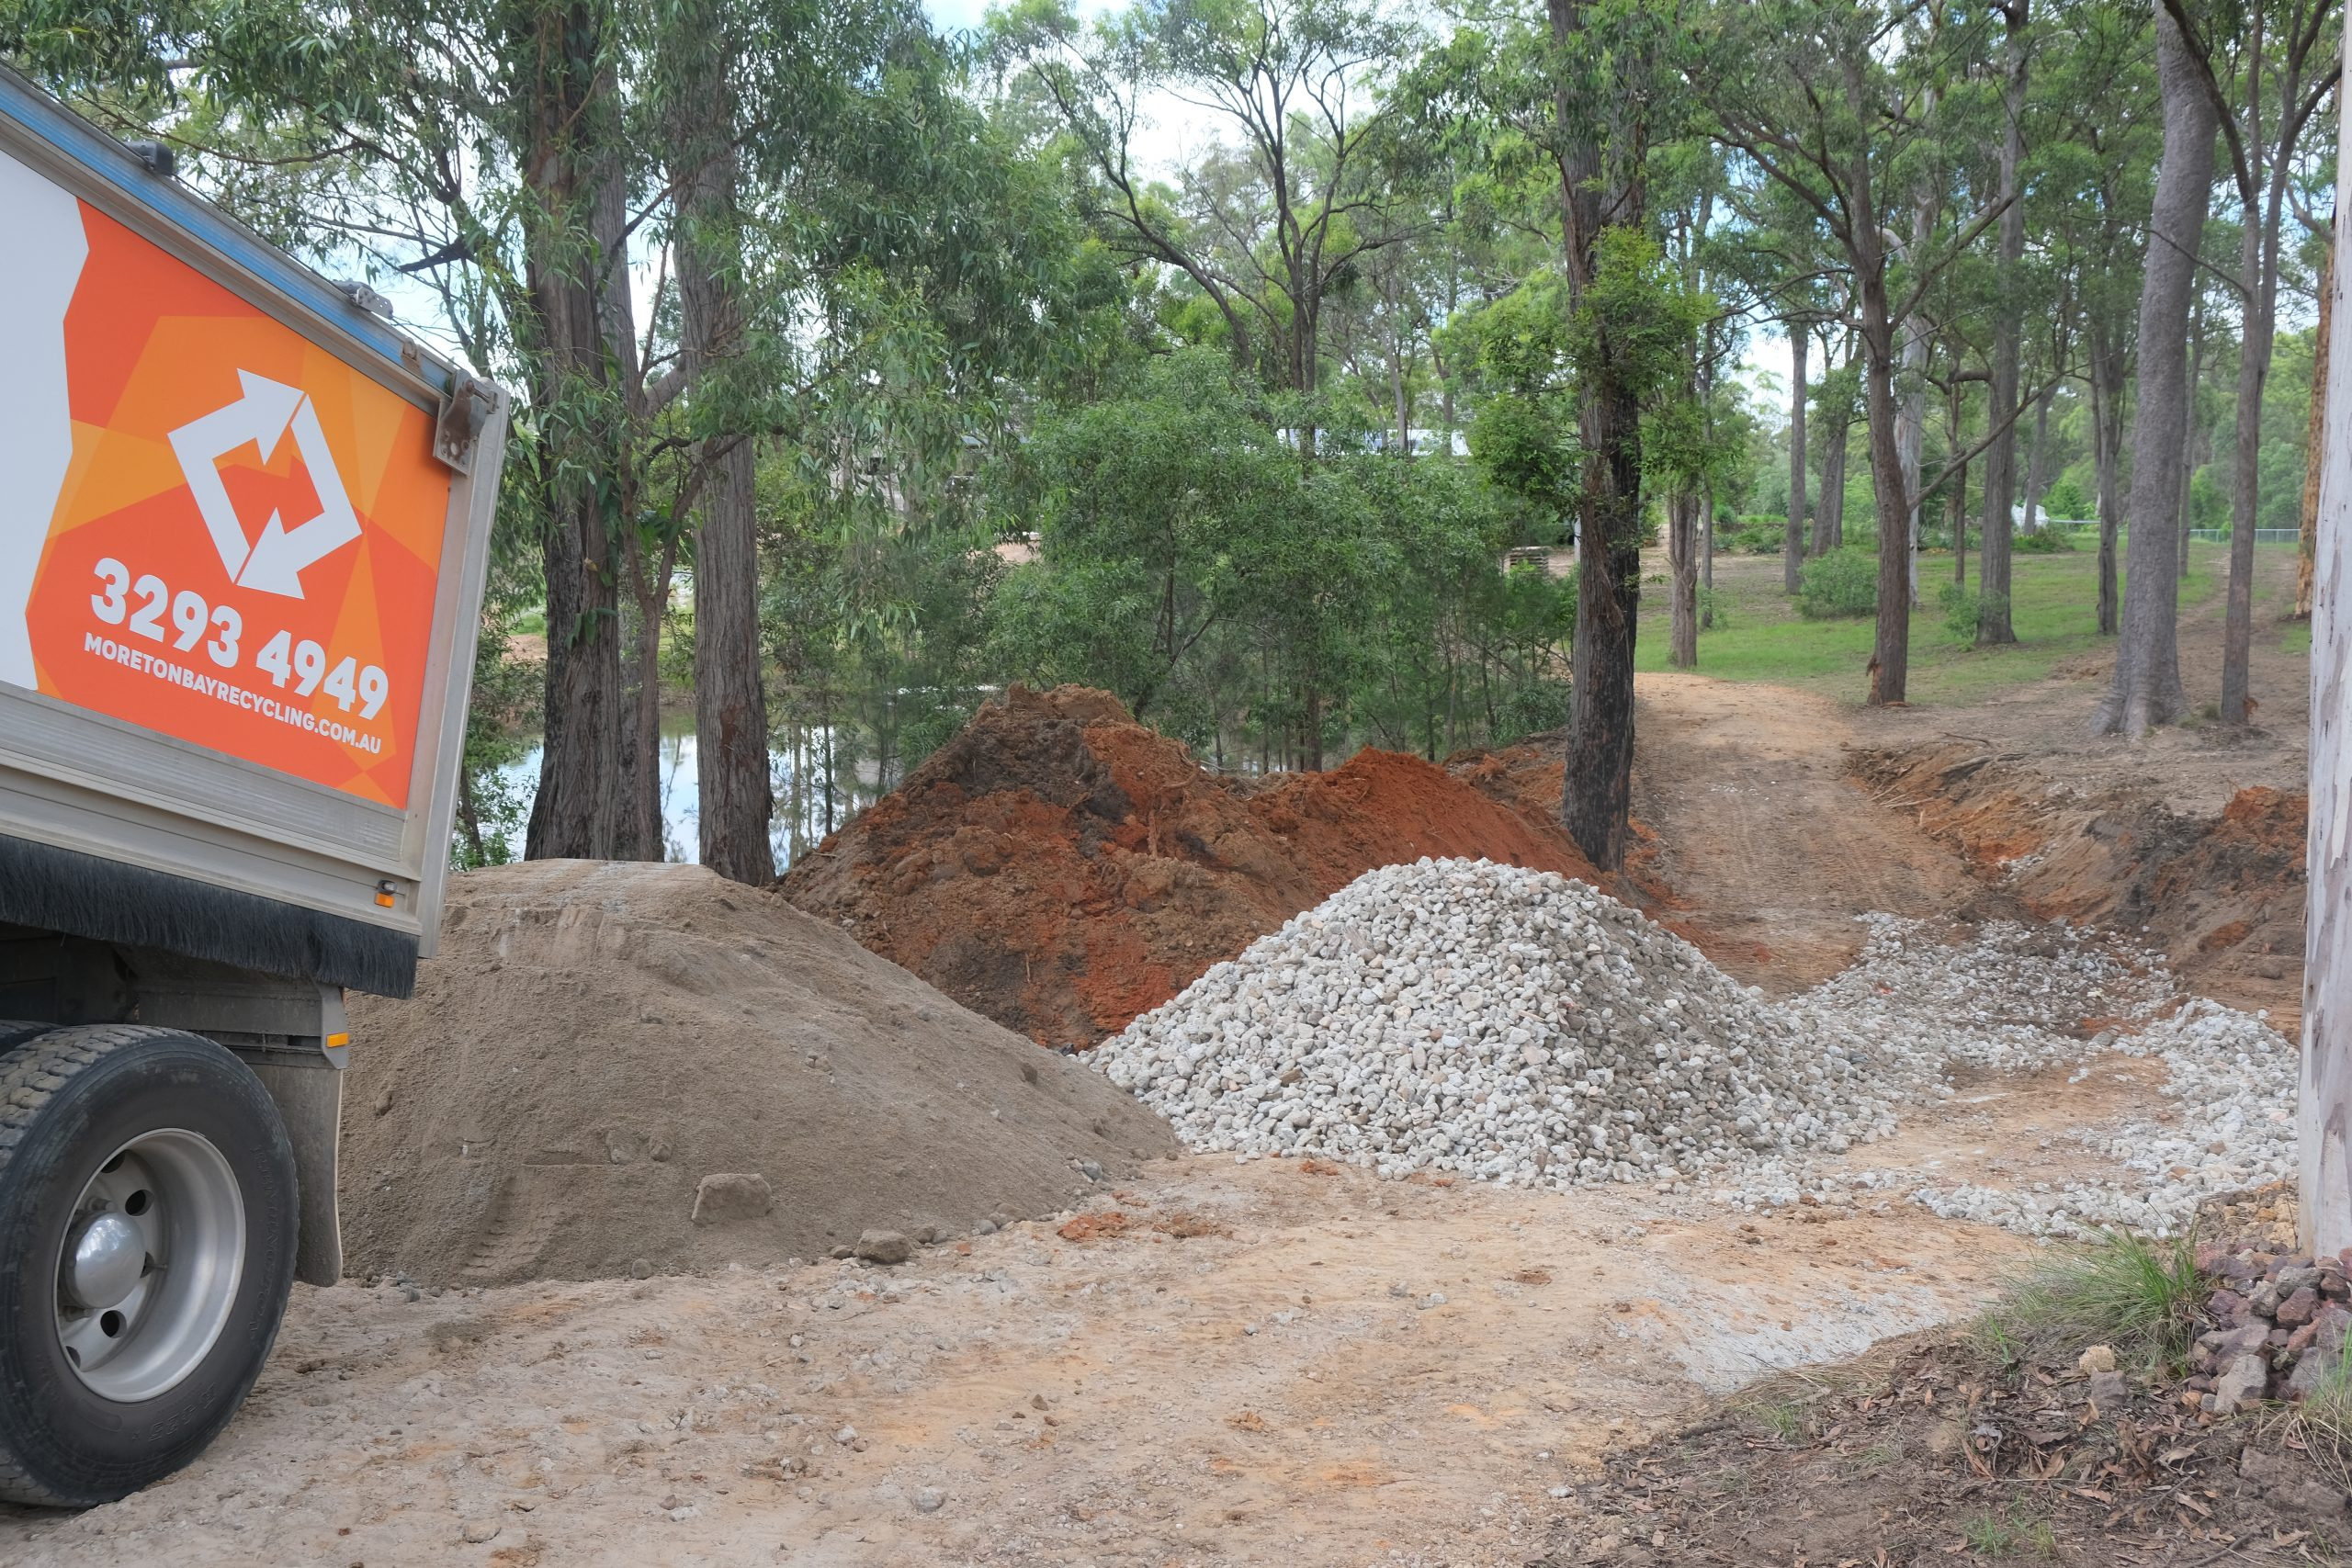 Moreton Bay Recycling road truck dumps recycled concrete aggregates at worksite